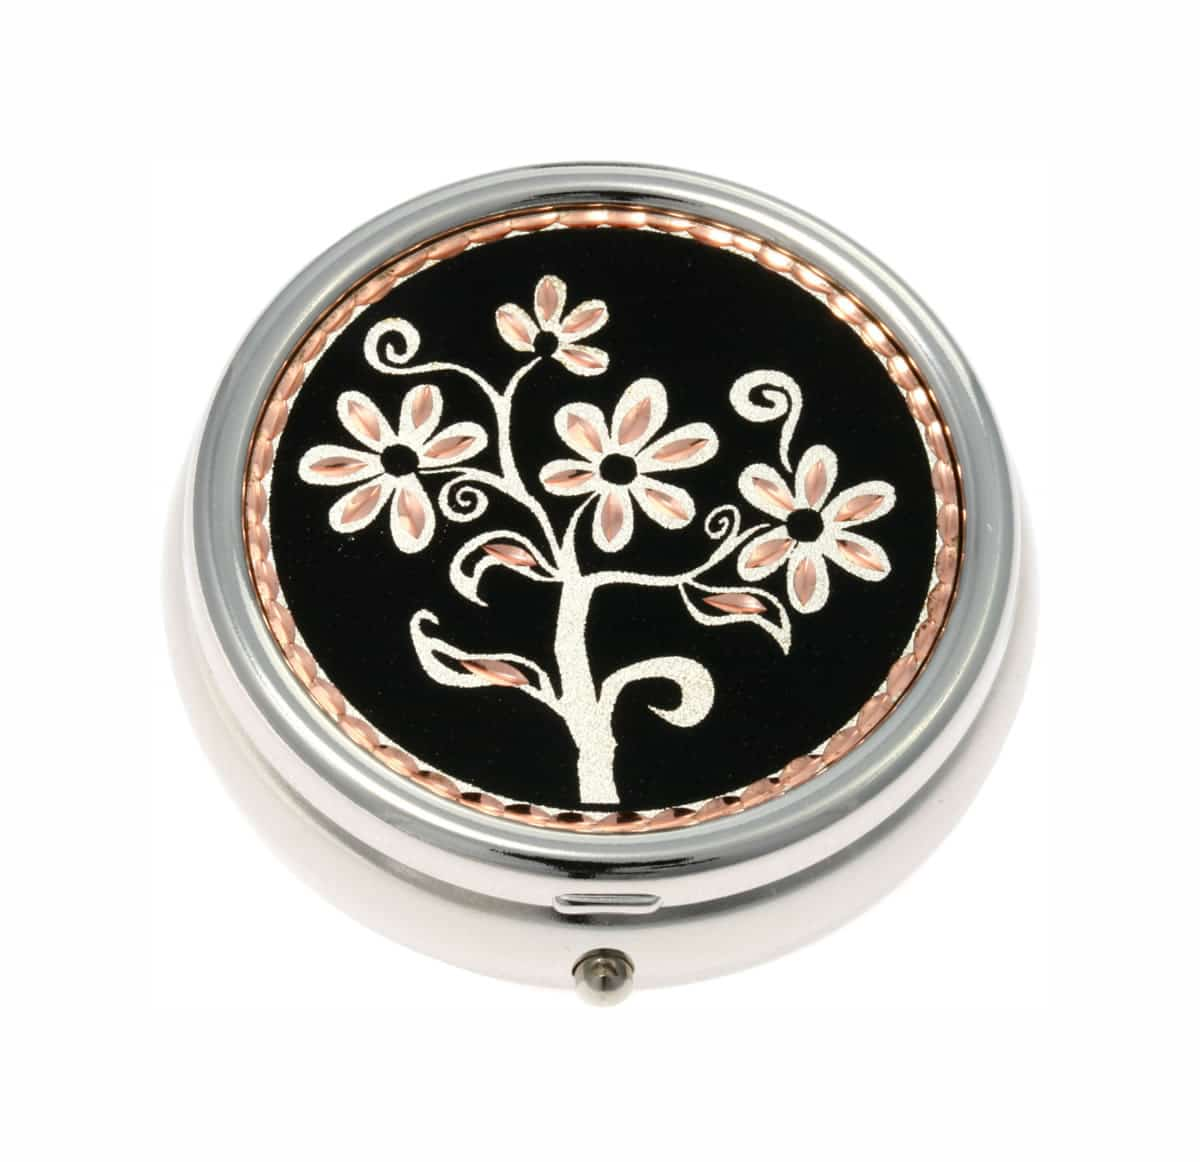 Buy Elegant Black Patina Background Flower Pill Boxes, Special Handmade Gifts for Women